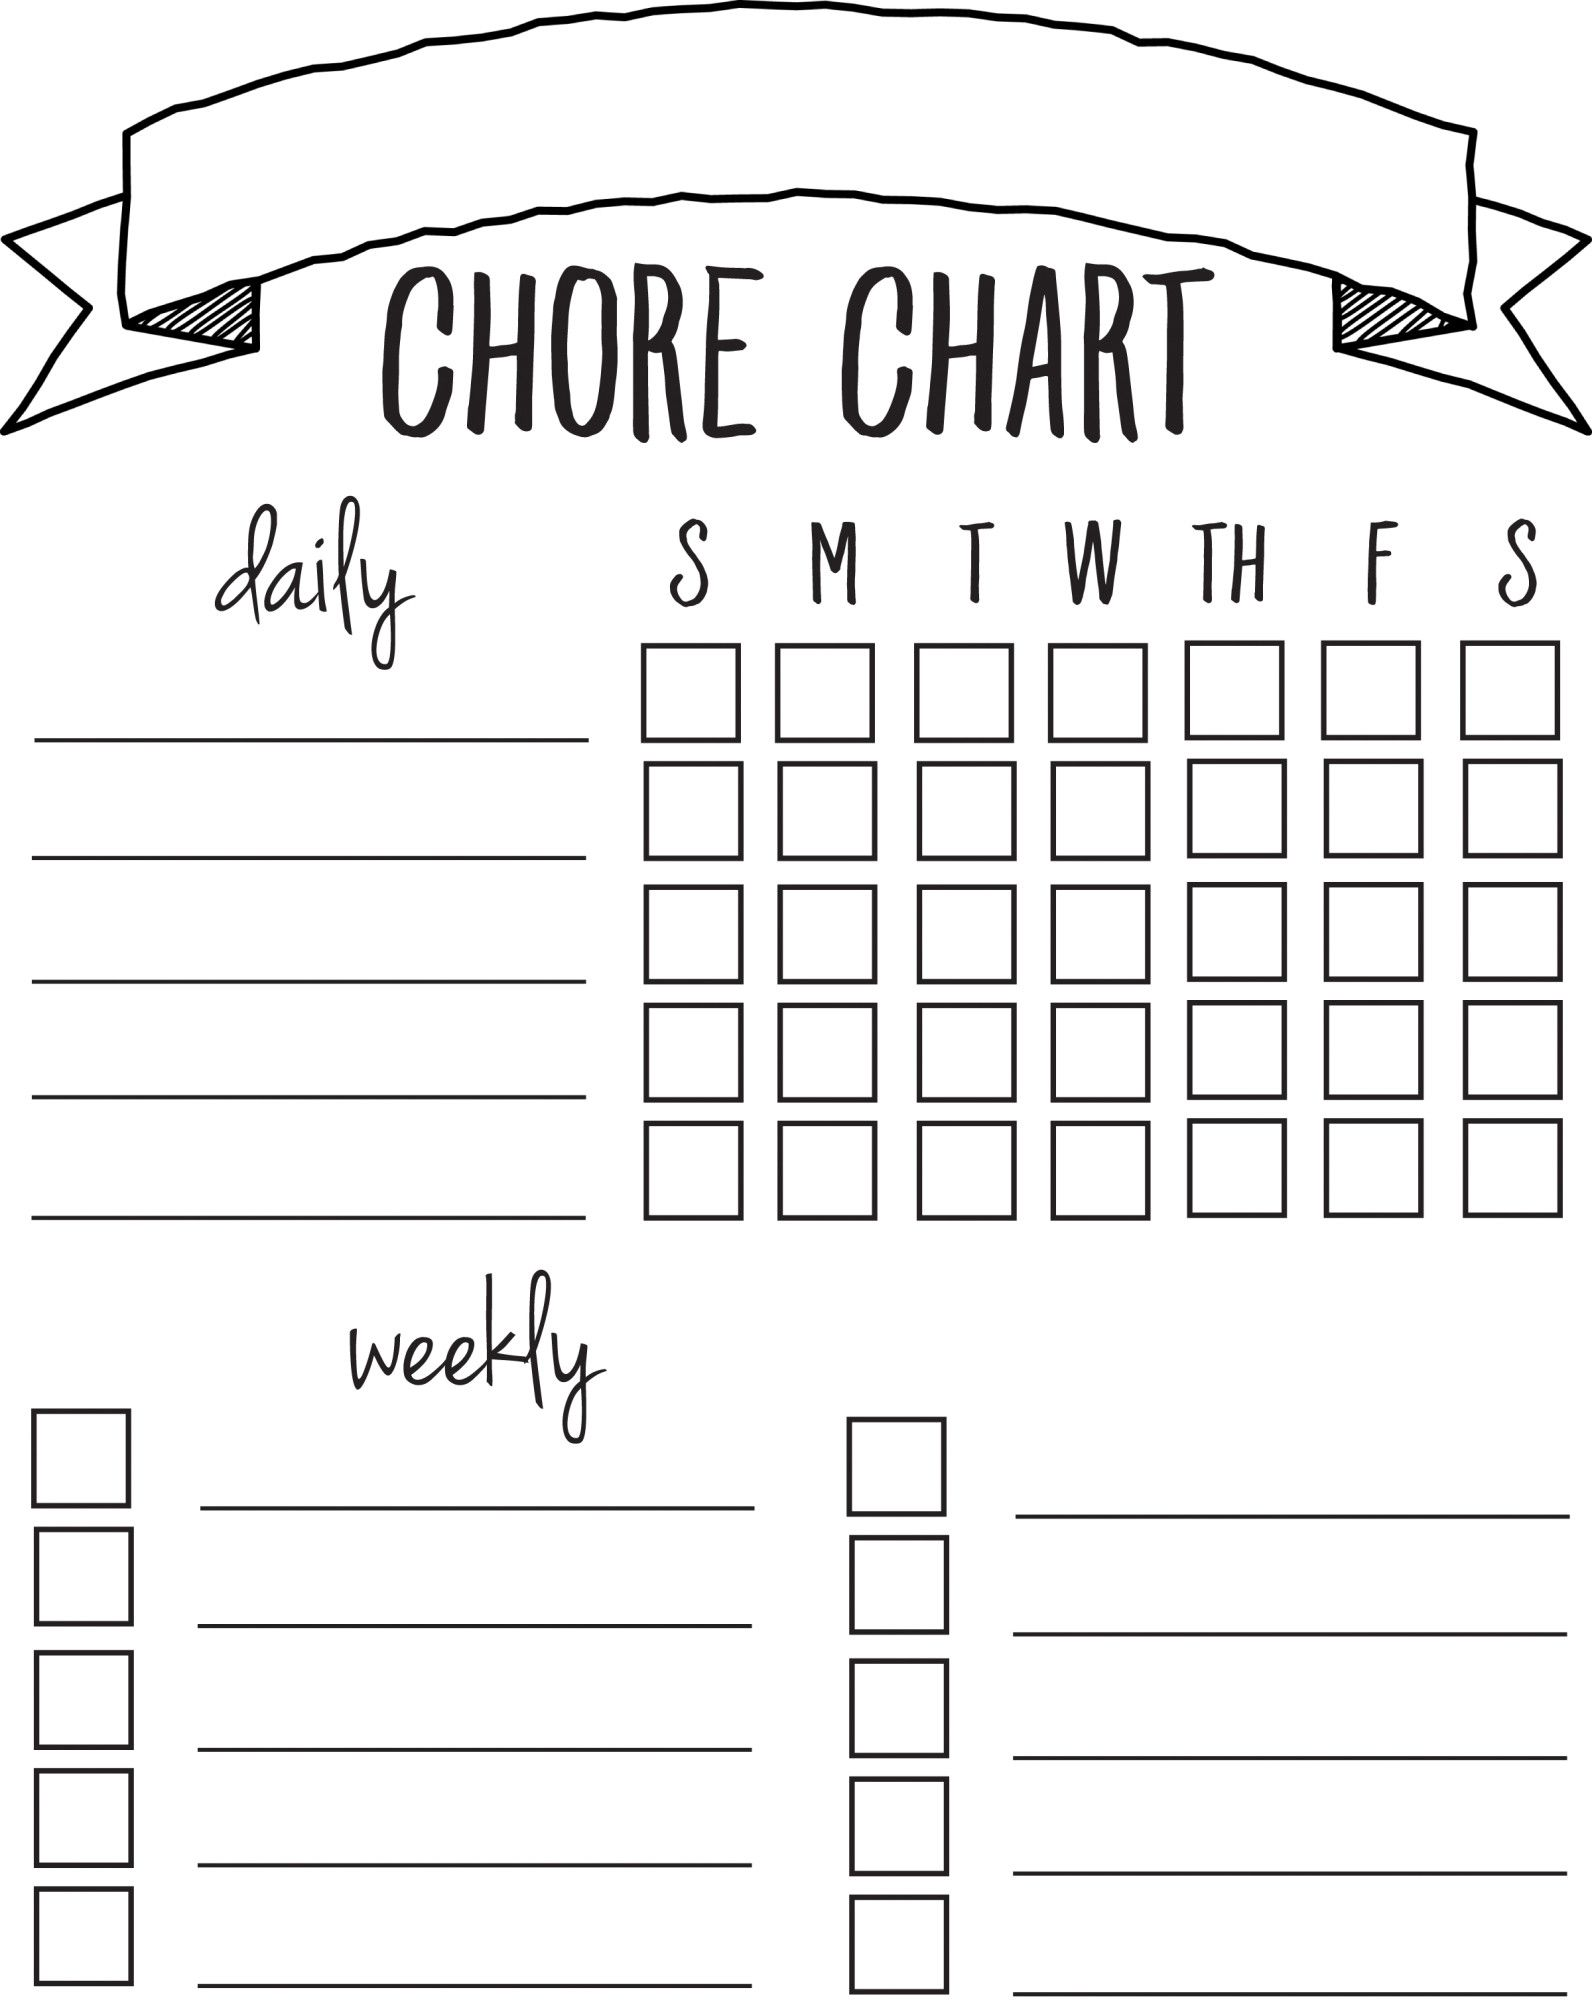 graphic relating to Chore Chart Printable called Do it yourself Printable Chore Chart Dwelling Handle Chore chart